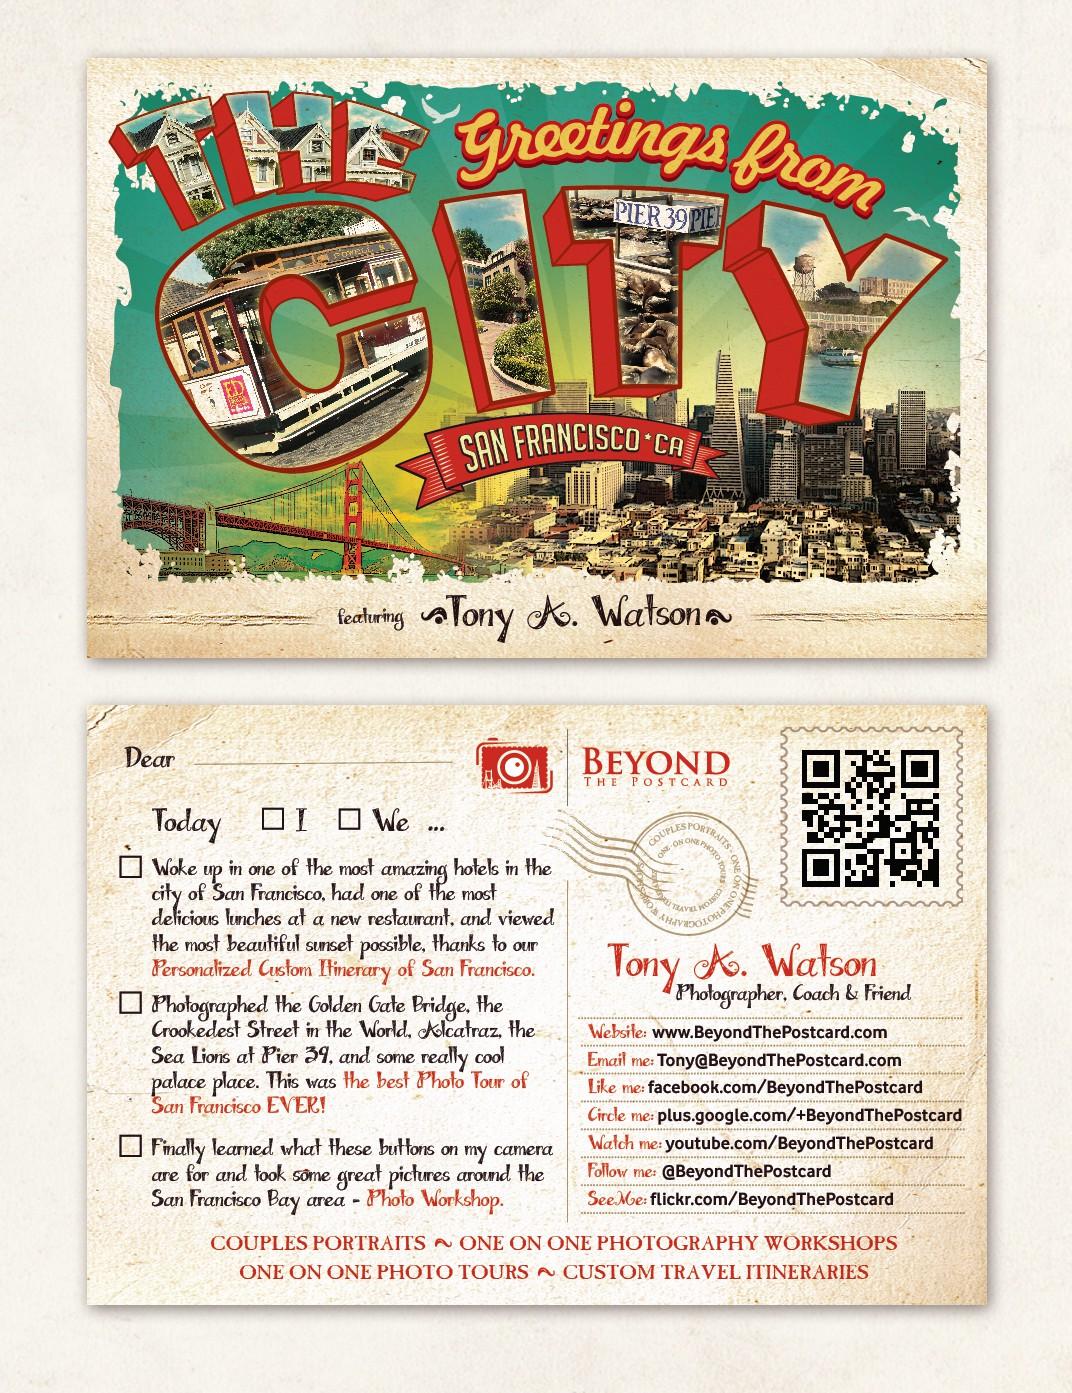 Cool Flyer with a postcard style design for tour/photography business